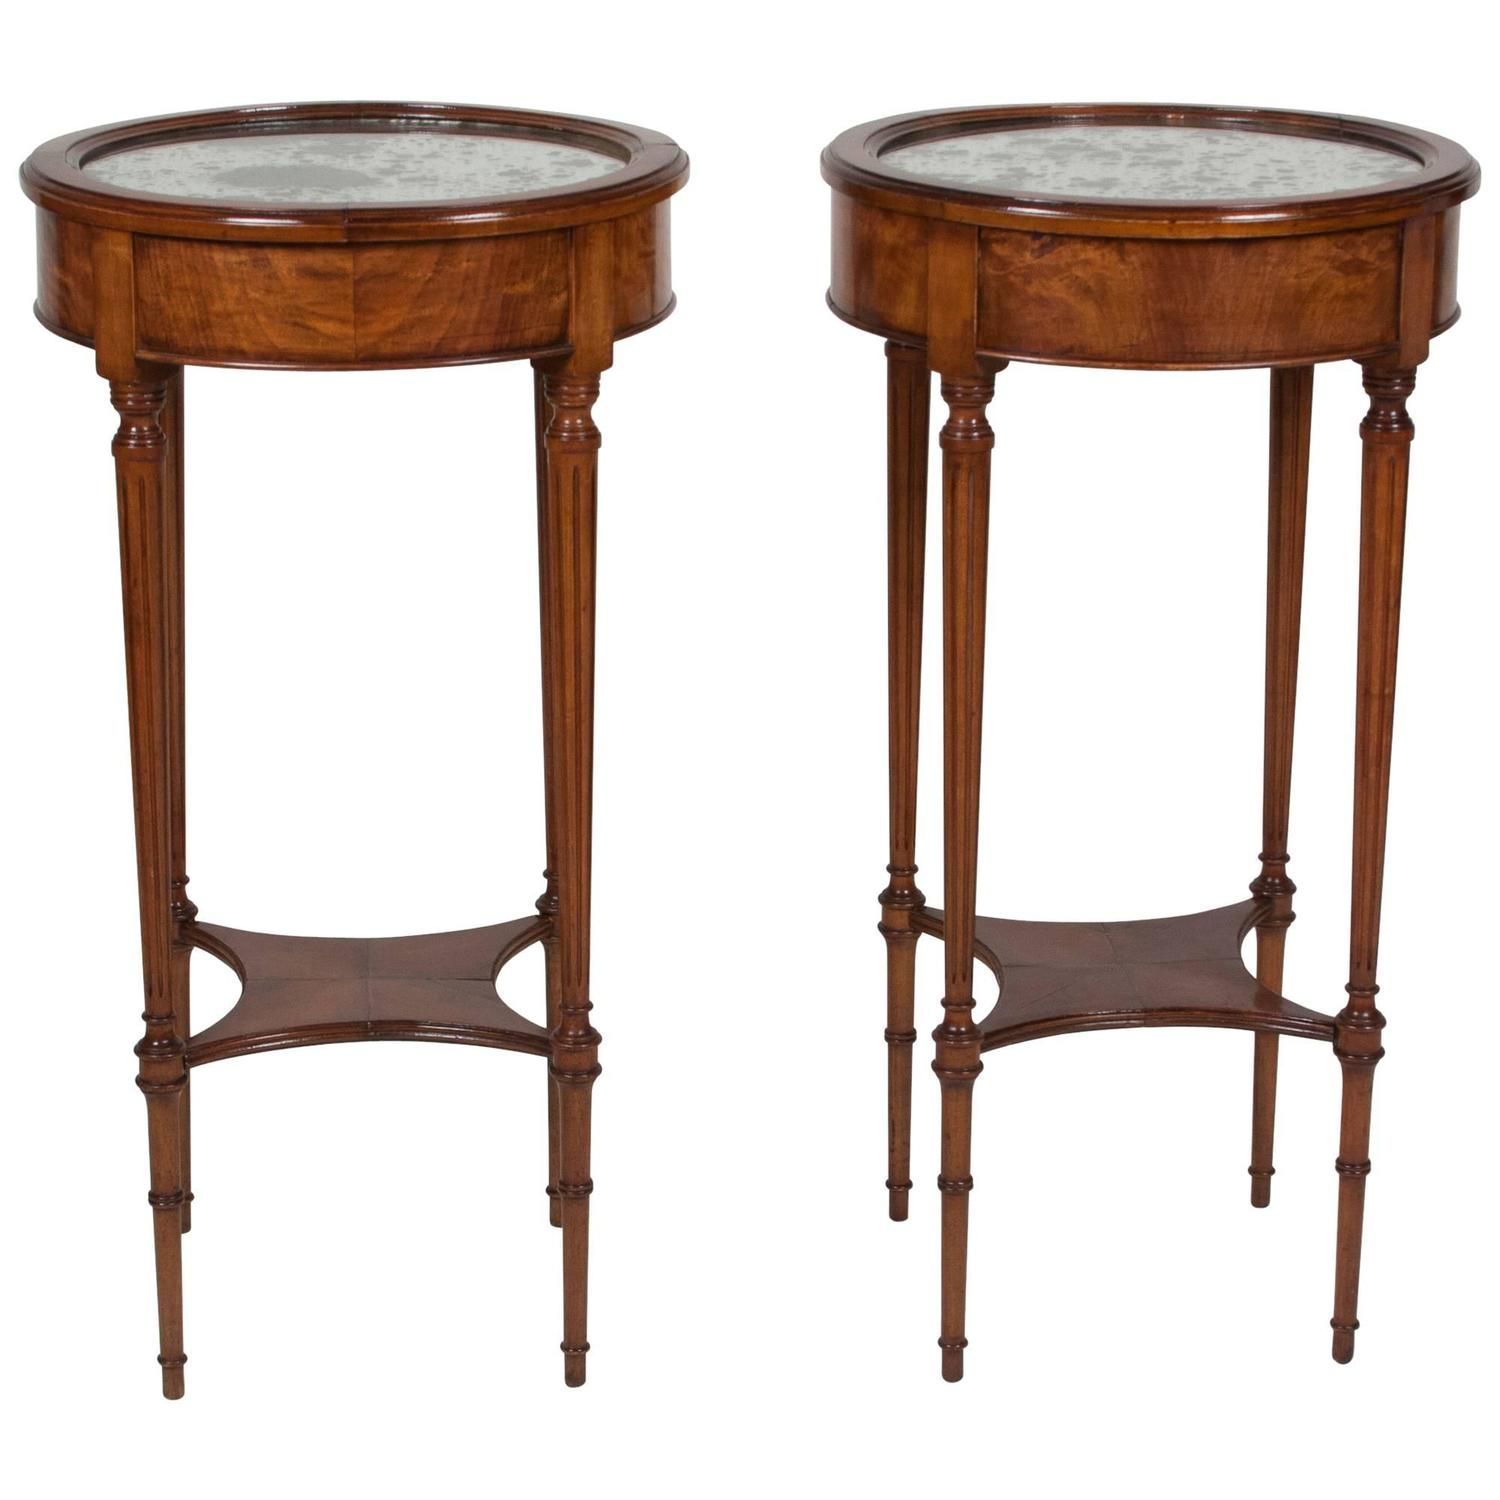 Pair Of Louis Xvi Style Cherry End Tables Cherry End Tables End